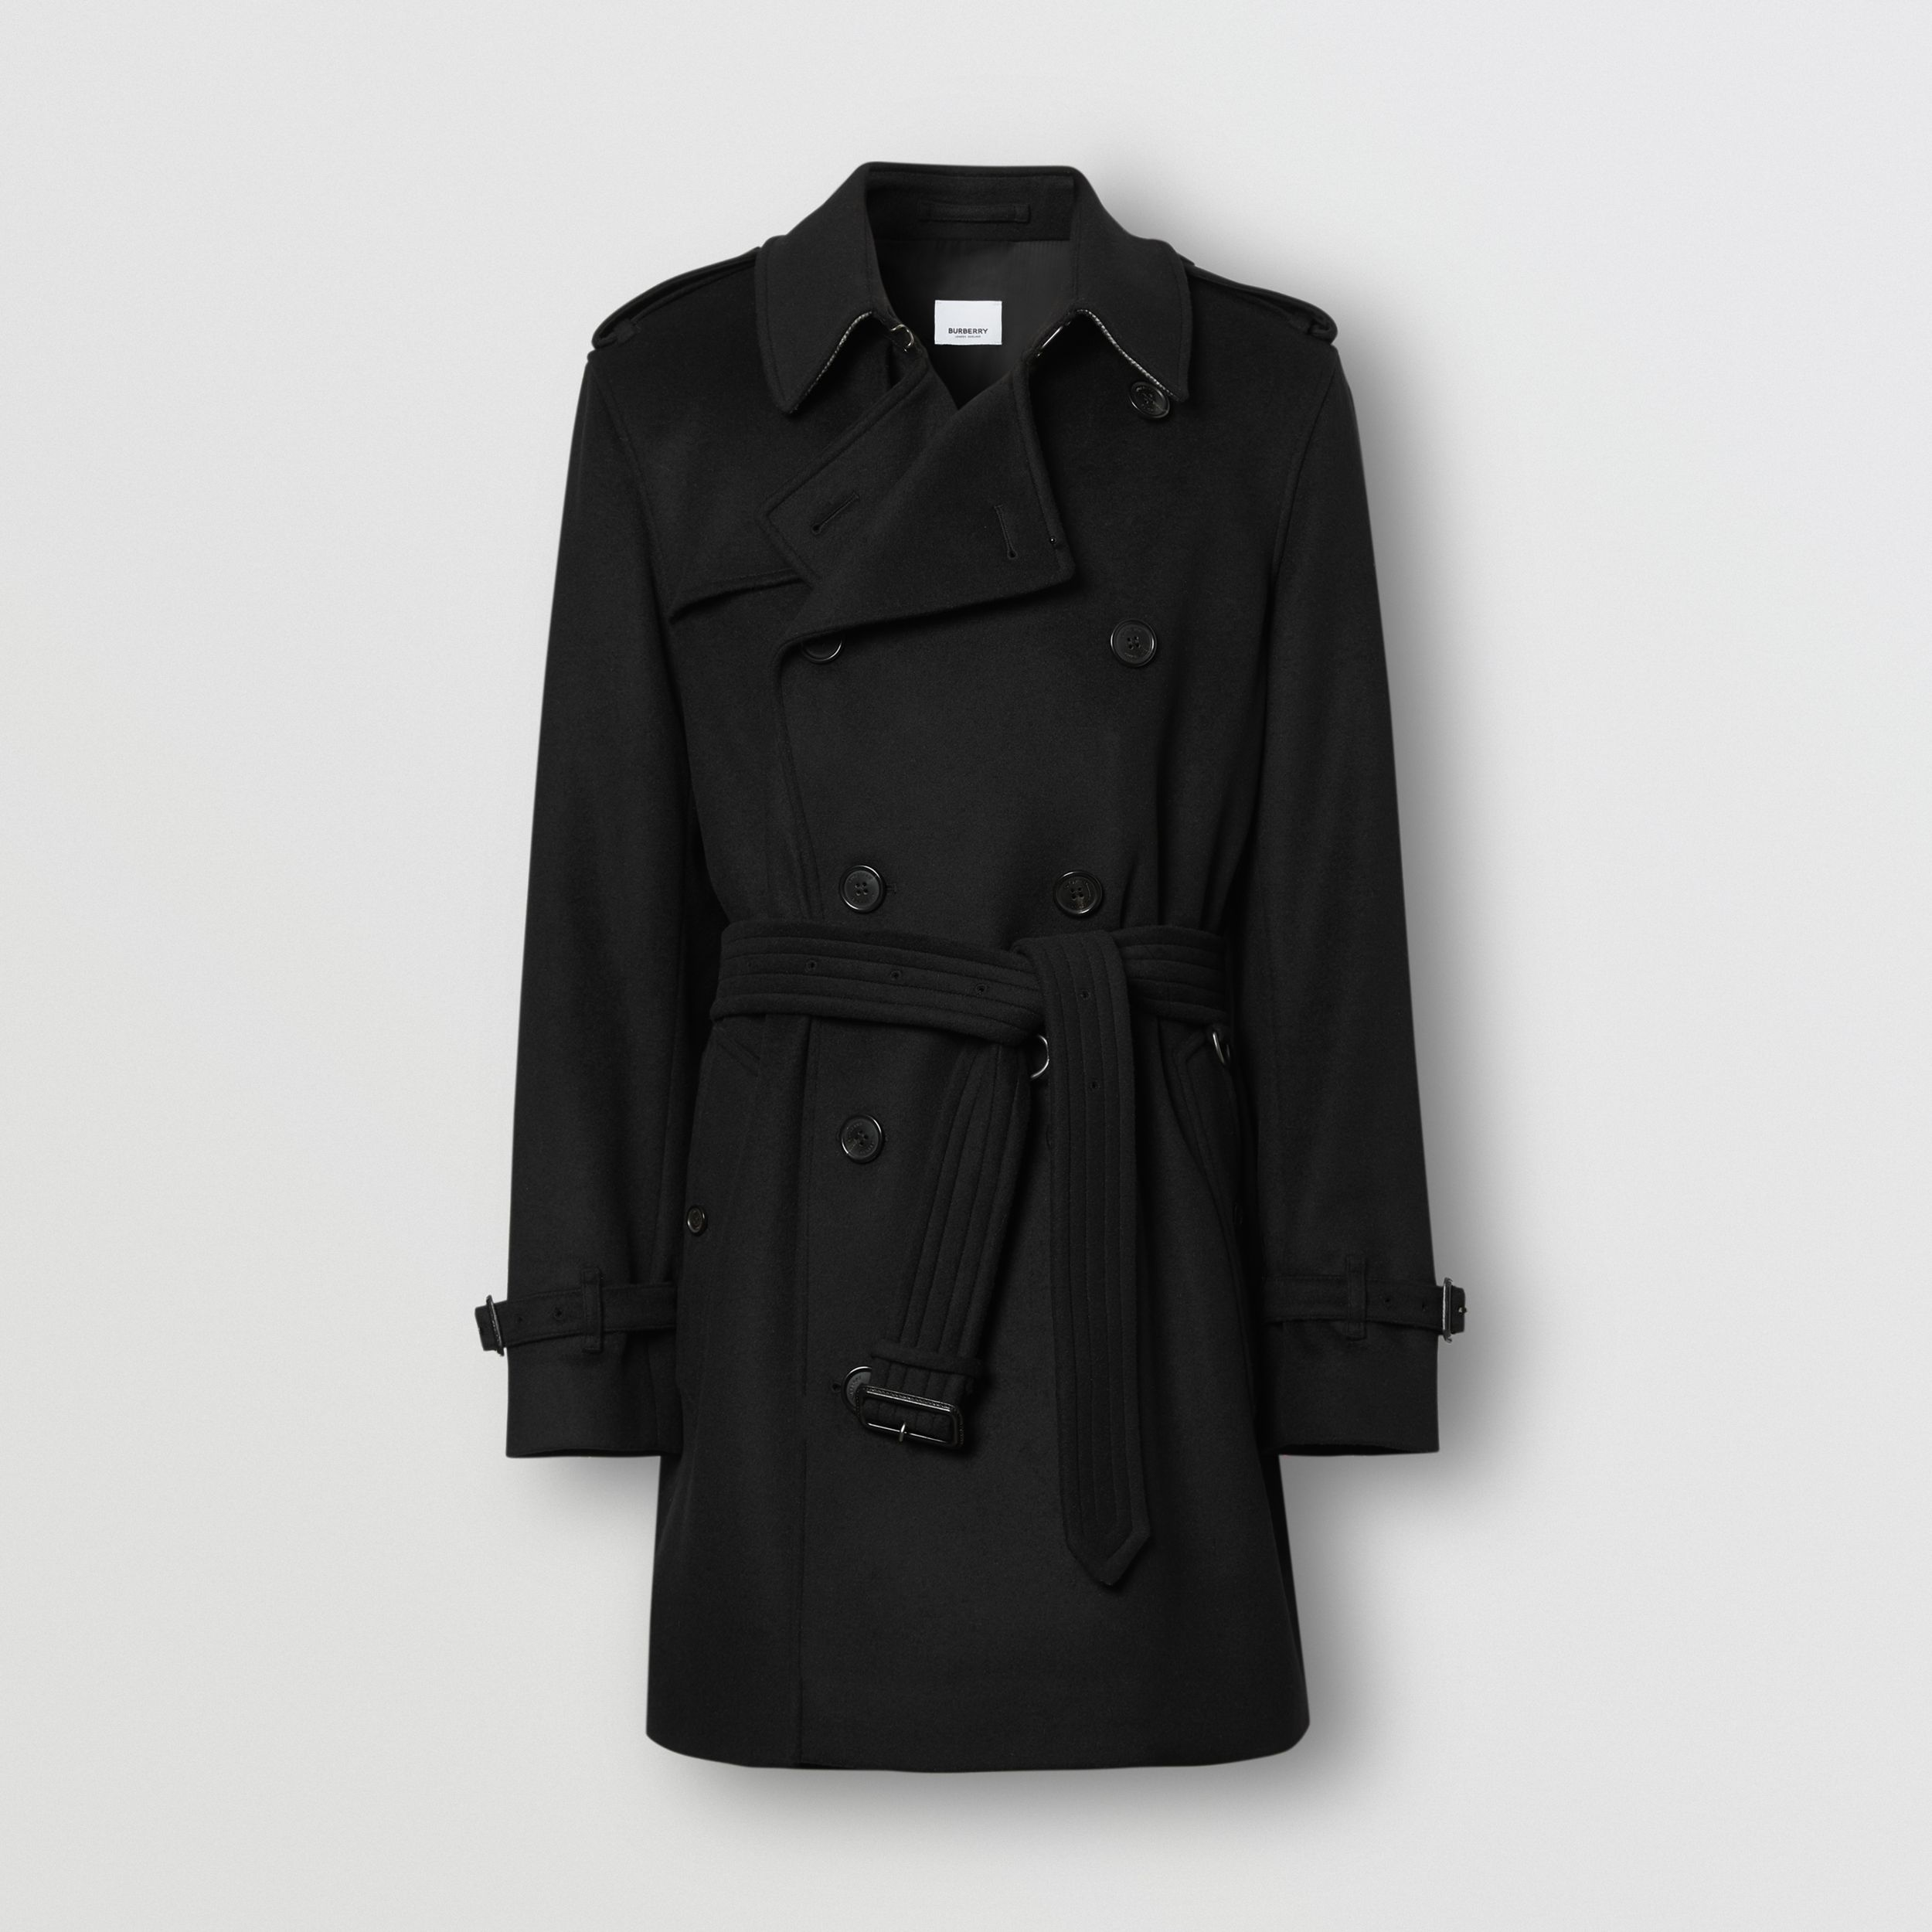 Wool Cashmere Trench Coat in Black - Men | Burberry Canada - 4